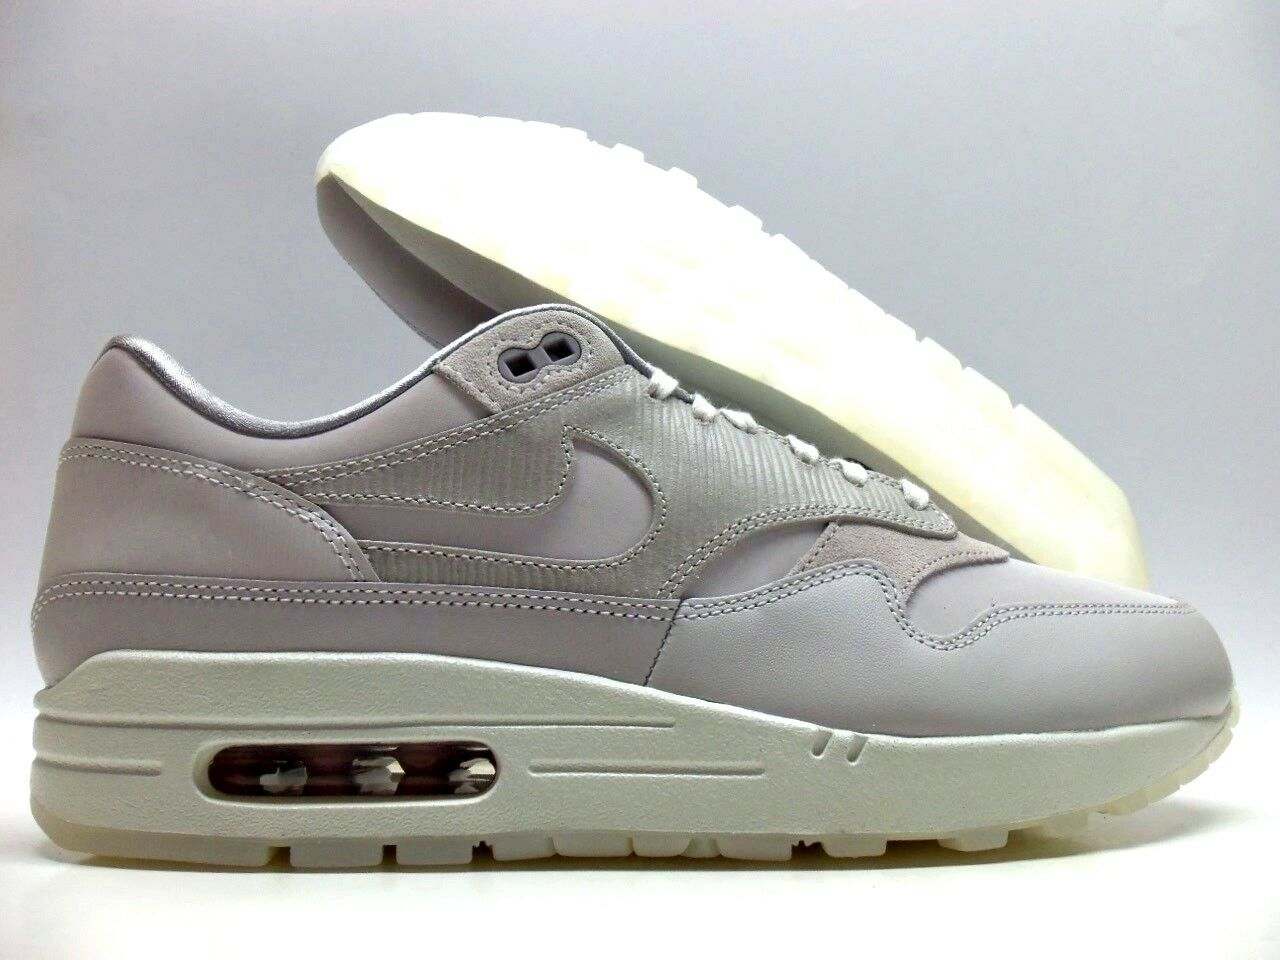 NIKE AIR MAX 1 PRM VAST GREY VAST GREY SIZE WOMEN'S 10.5 MEN 9 [454746-017]